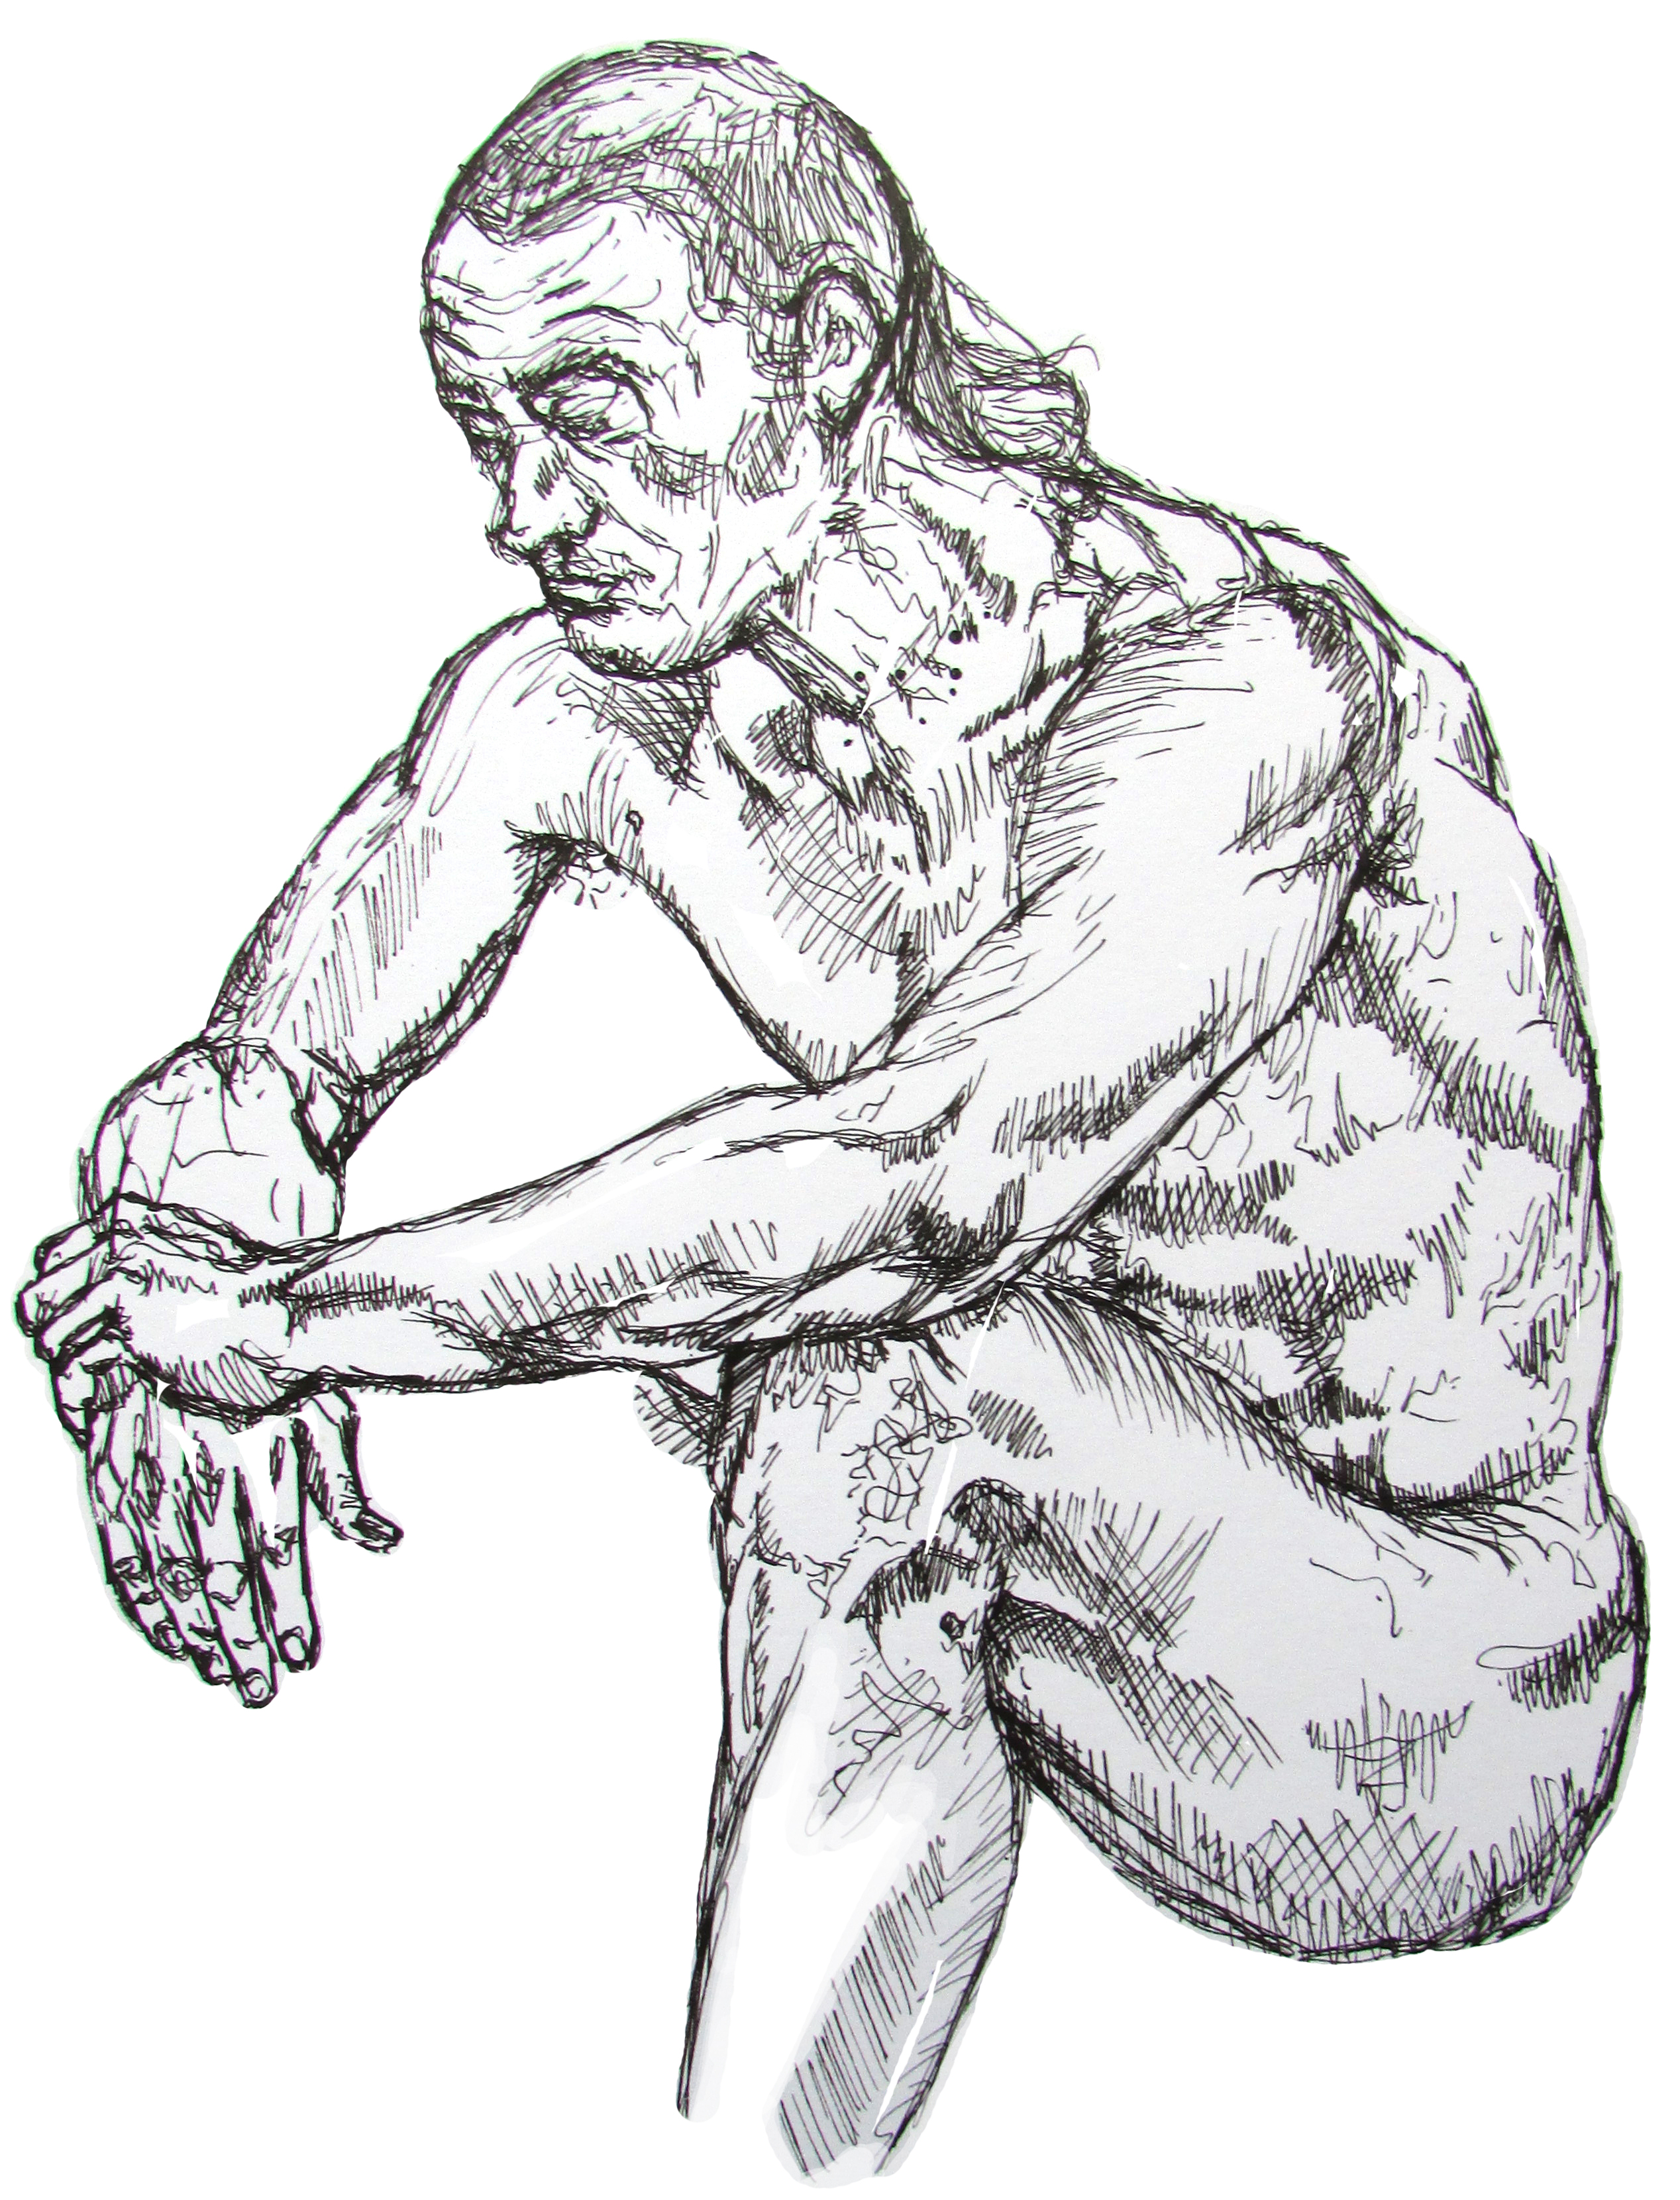 Croquis Drawing at GetDrawings.com | Free for personal use Croquis ...